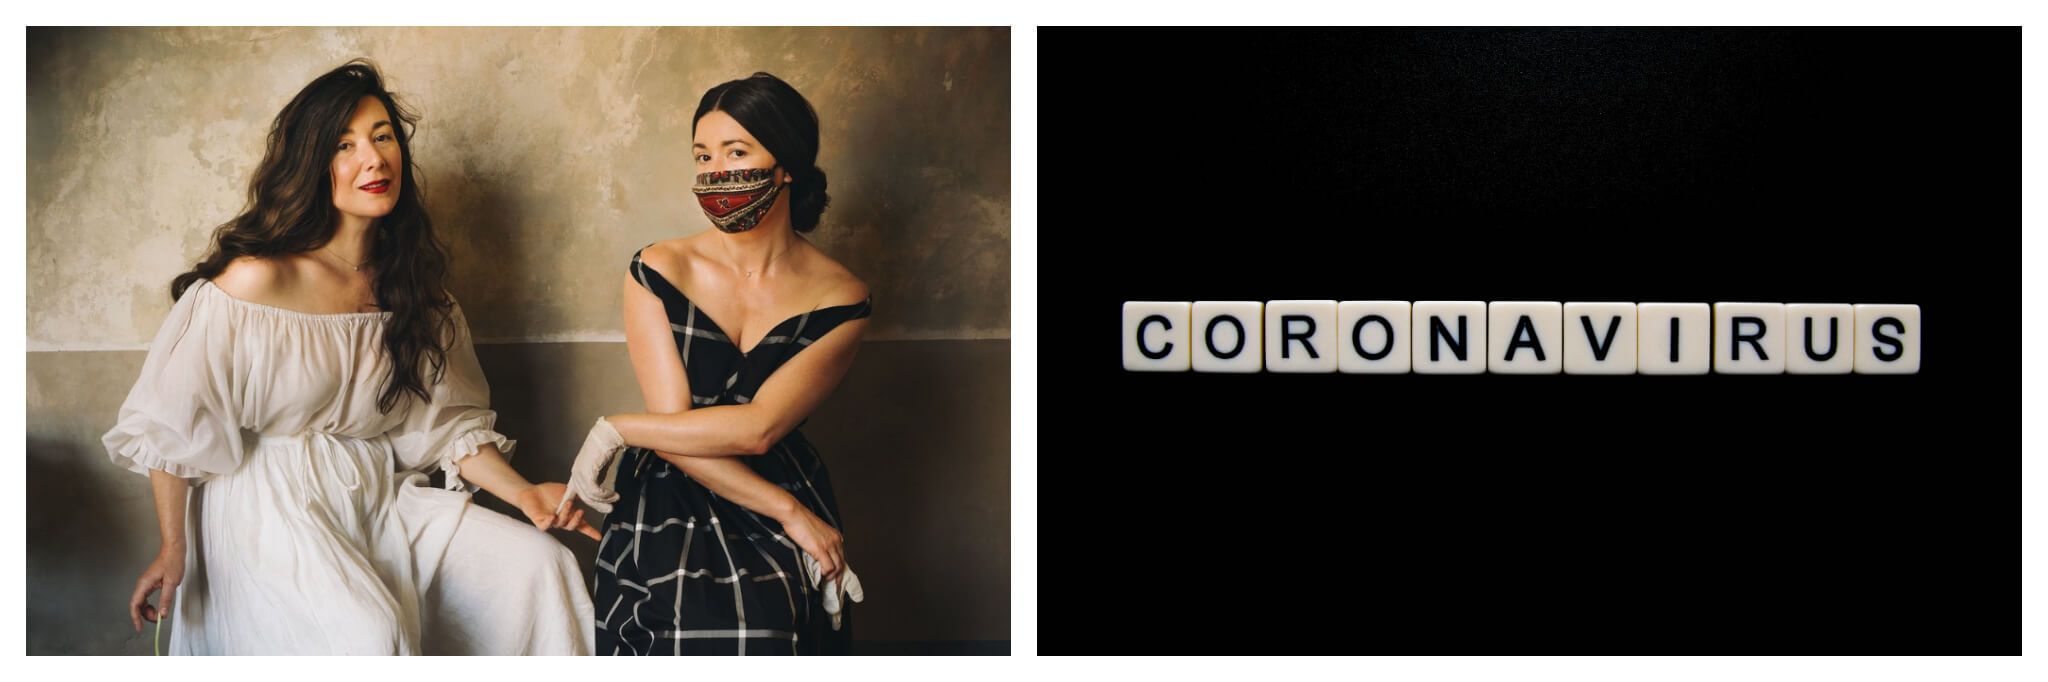 """Left: Two woman, both wearing elegant dresses, sit for a portrait and the woman on the right wears a face mask, Right: Block letters that resemble scrabble squares spell out the word """"coronavirus"""""""